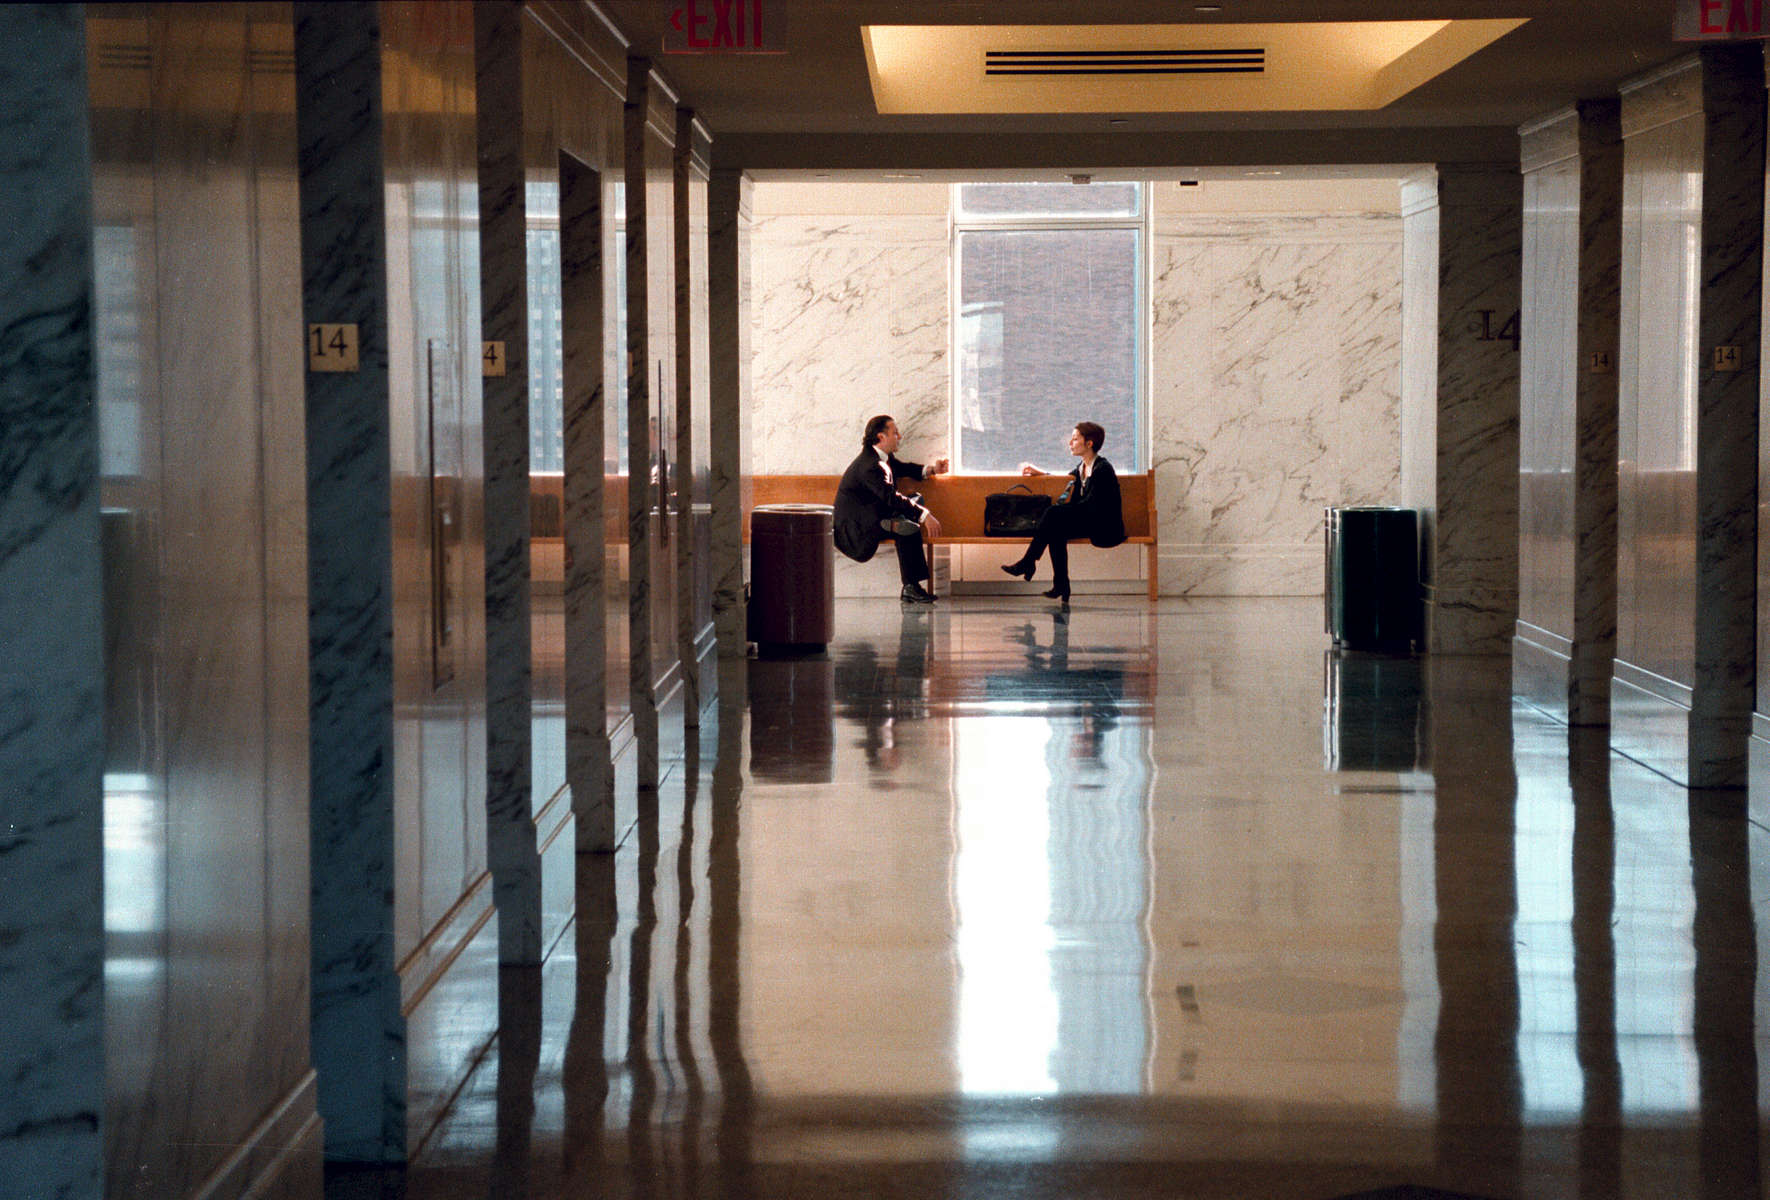 Daniel Patrick Moynihan Courthouse, 14th floor – December, 2004